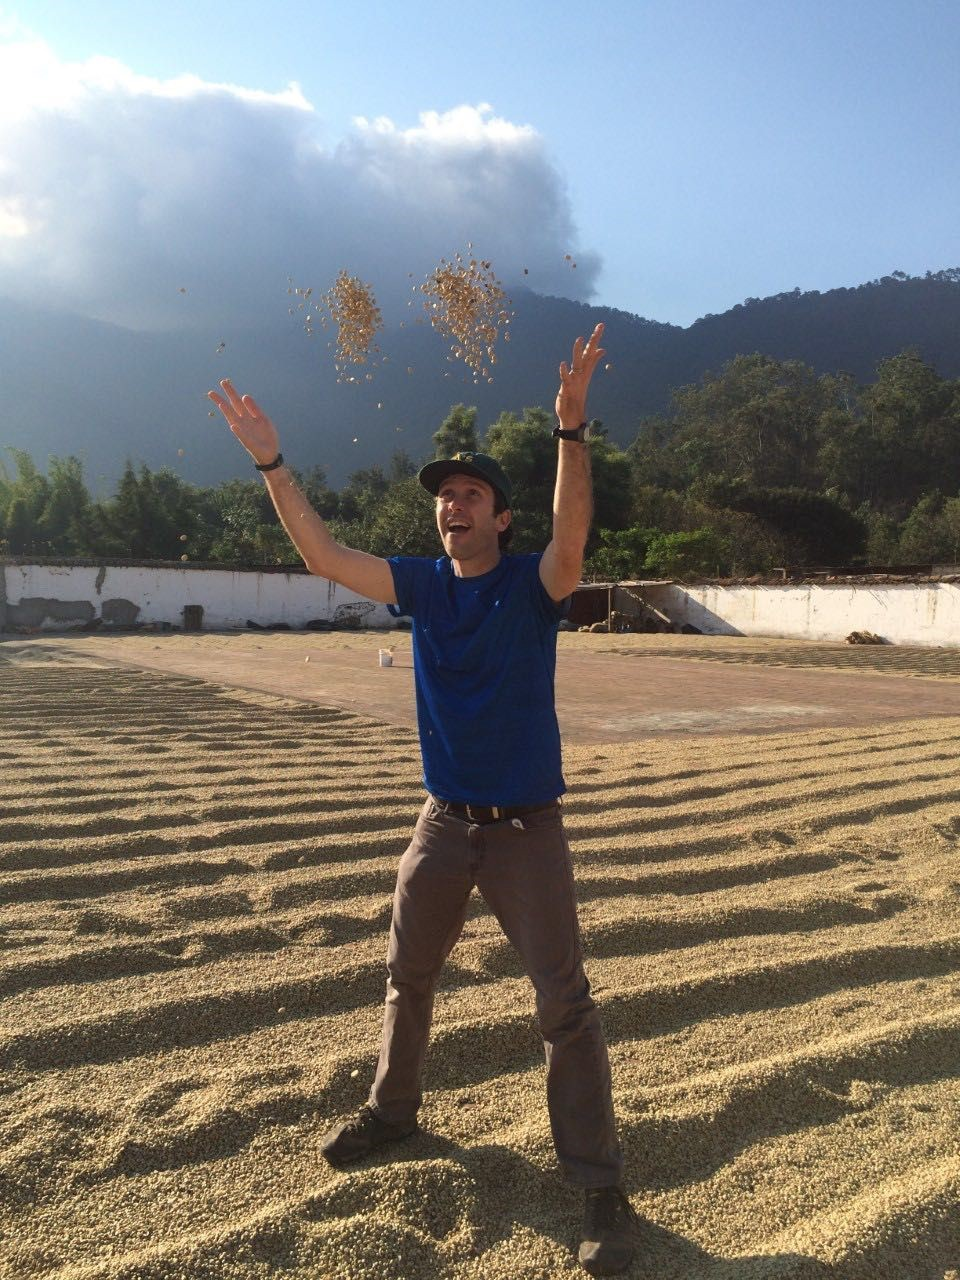 Nicholas Babin throwing grain in a field